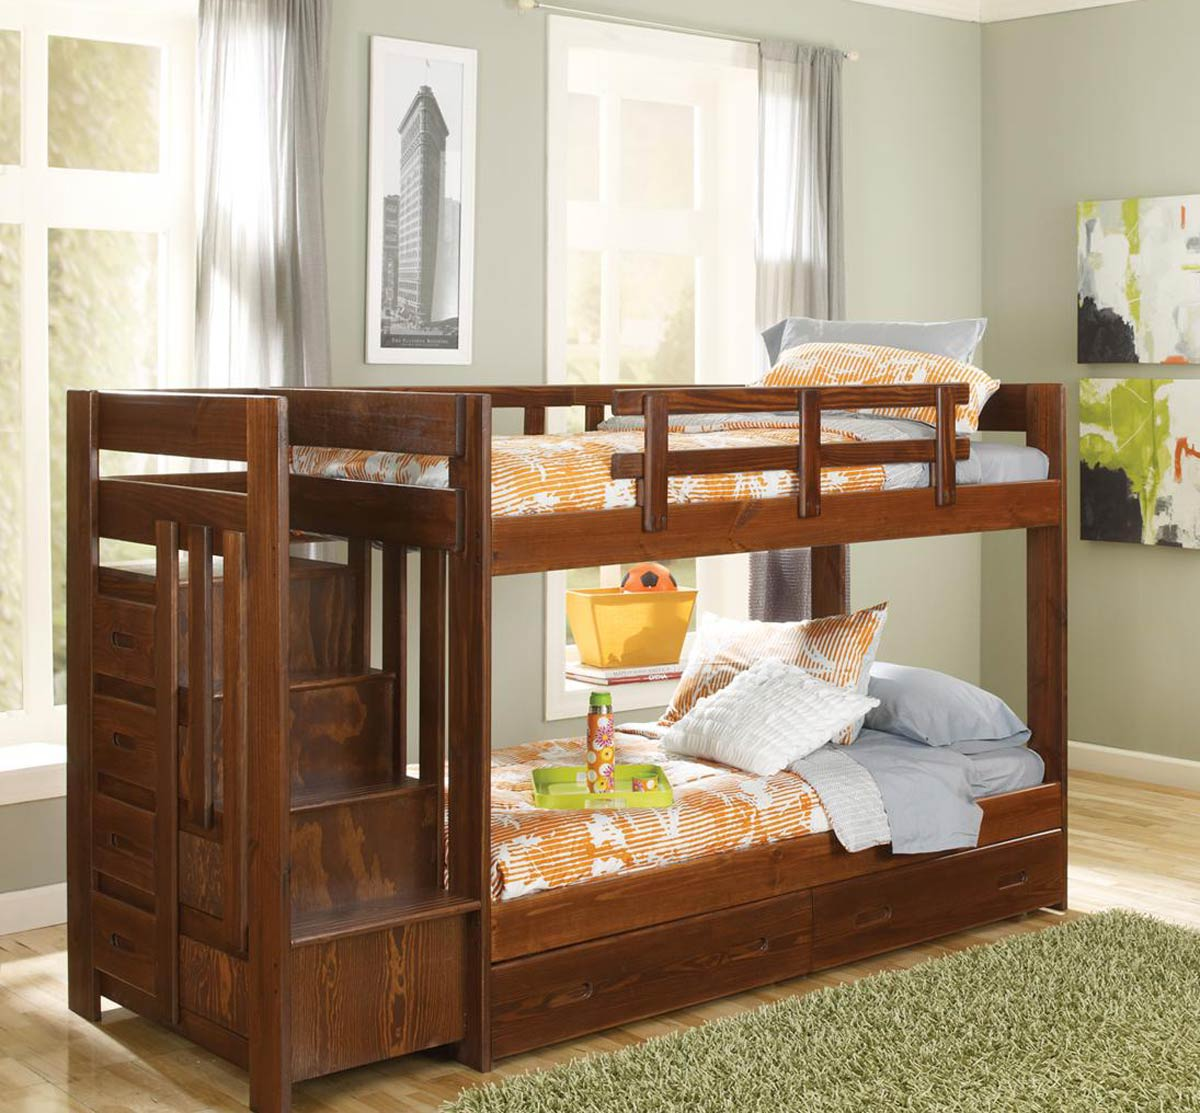 Chelsea Home 361544-S Twin Over Twin Reversible Stair Bunk Bed with Underbed Storage - Dark